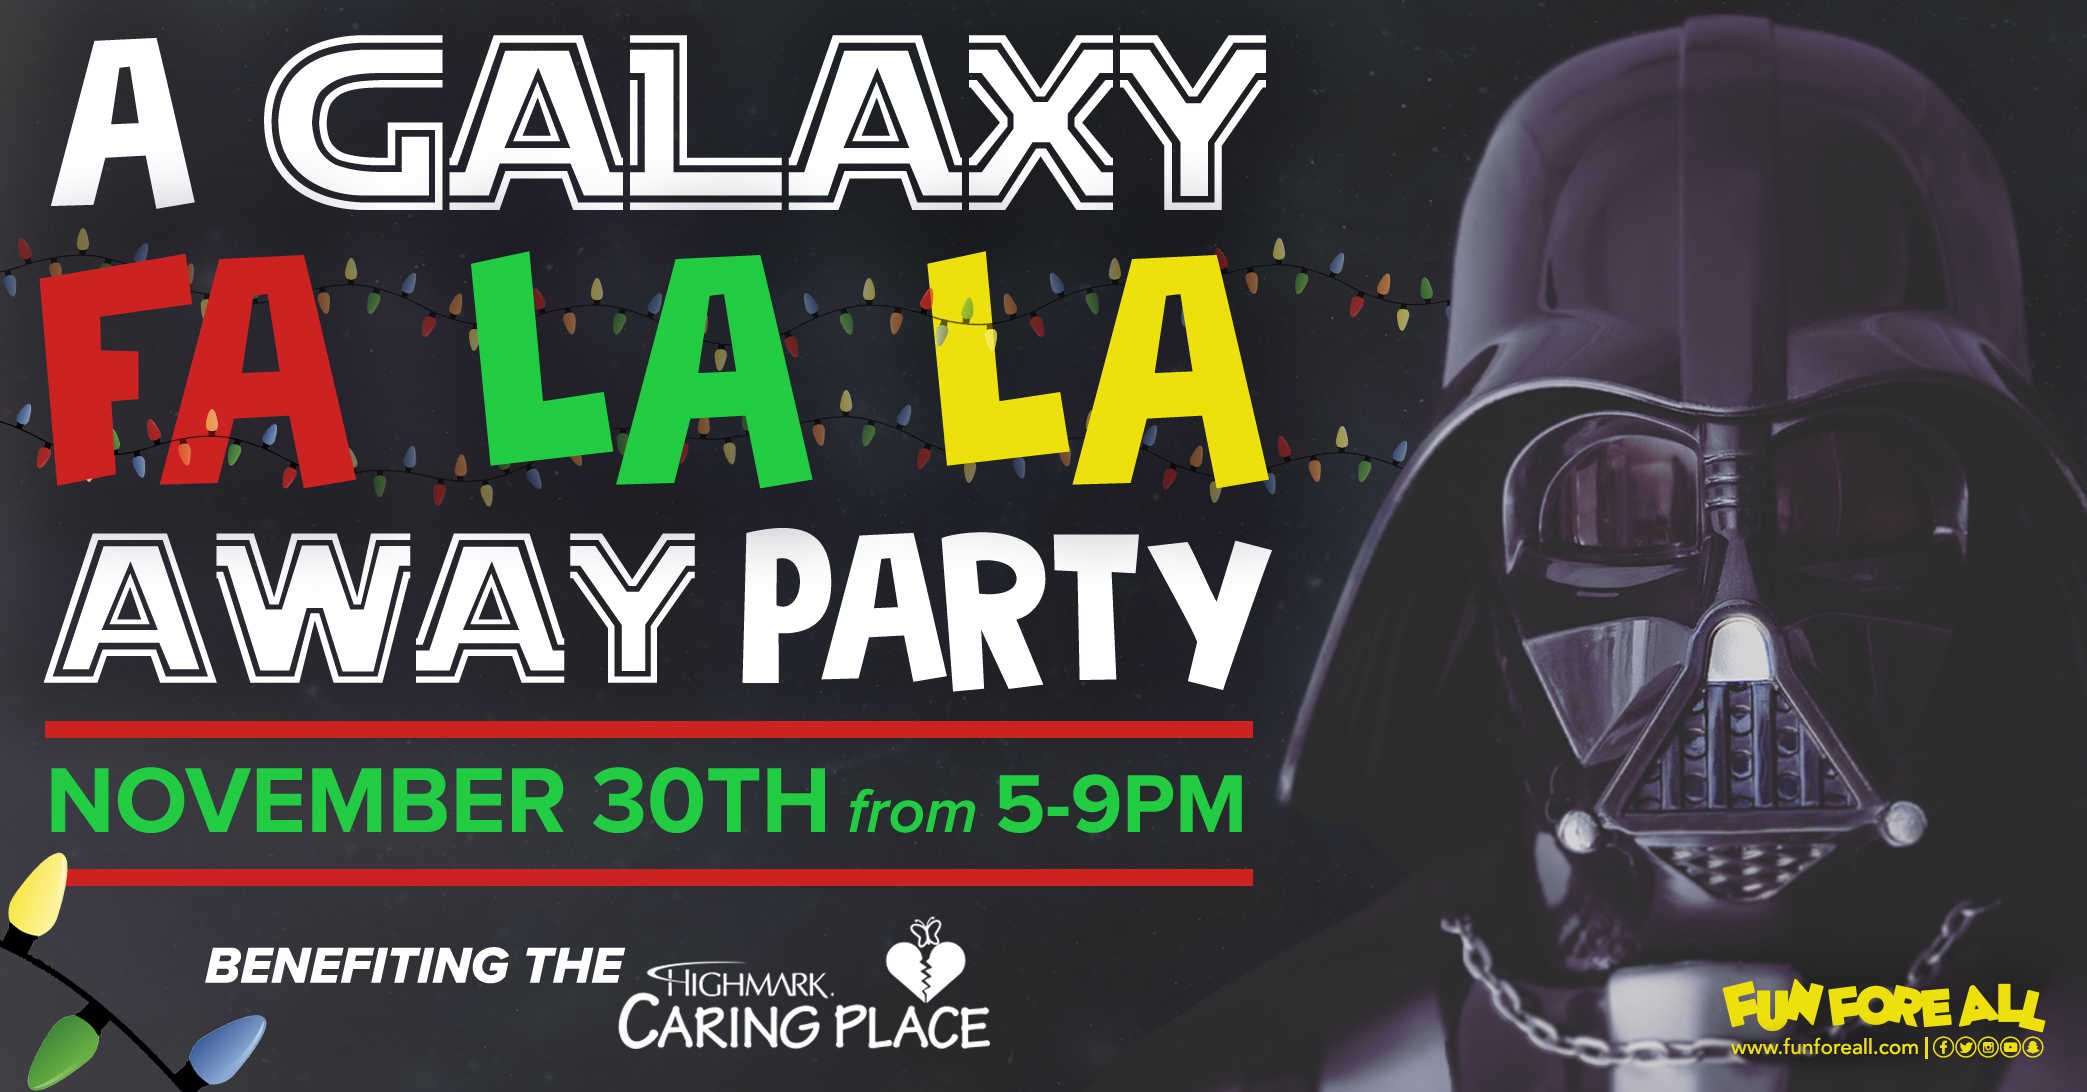 A GALAXY FA LA LA AWAY PARTY INVITE BANNER (2018)